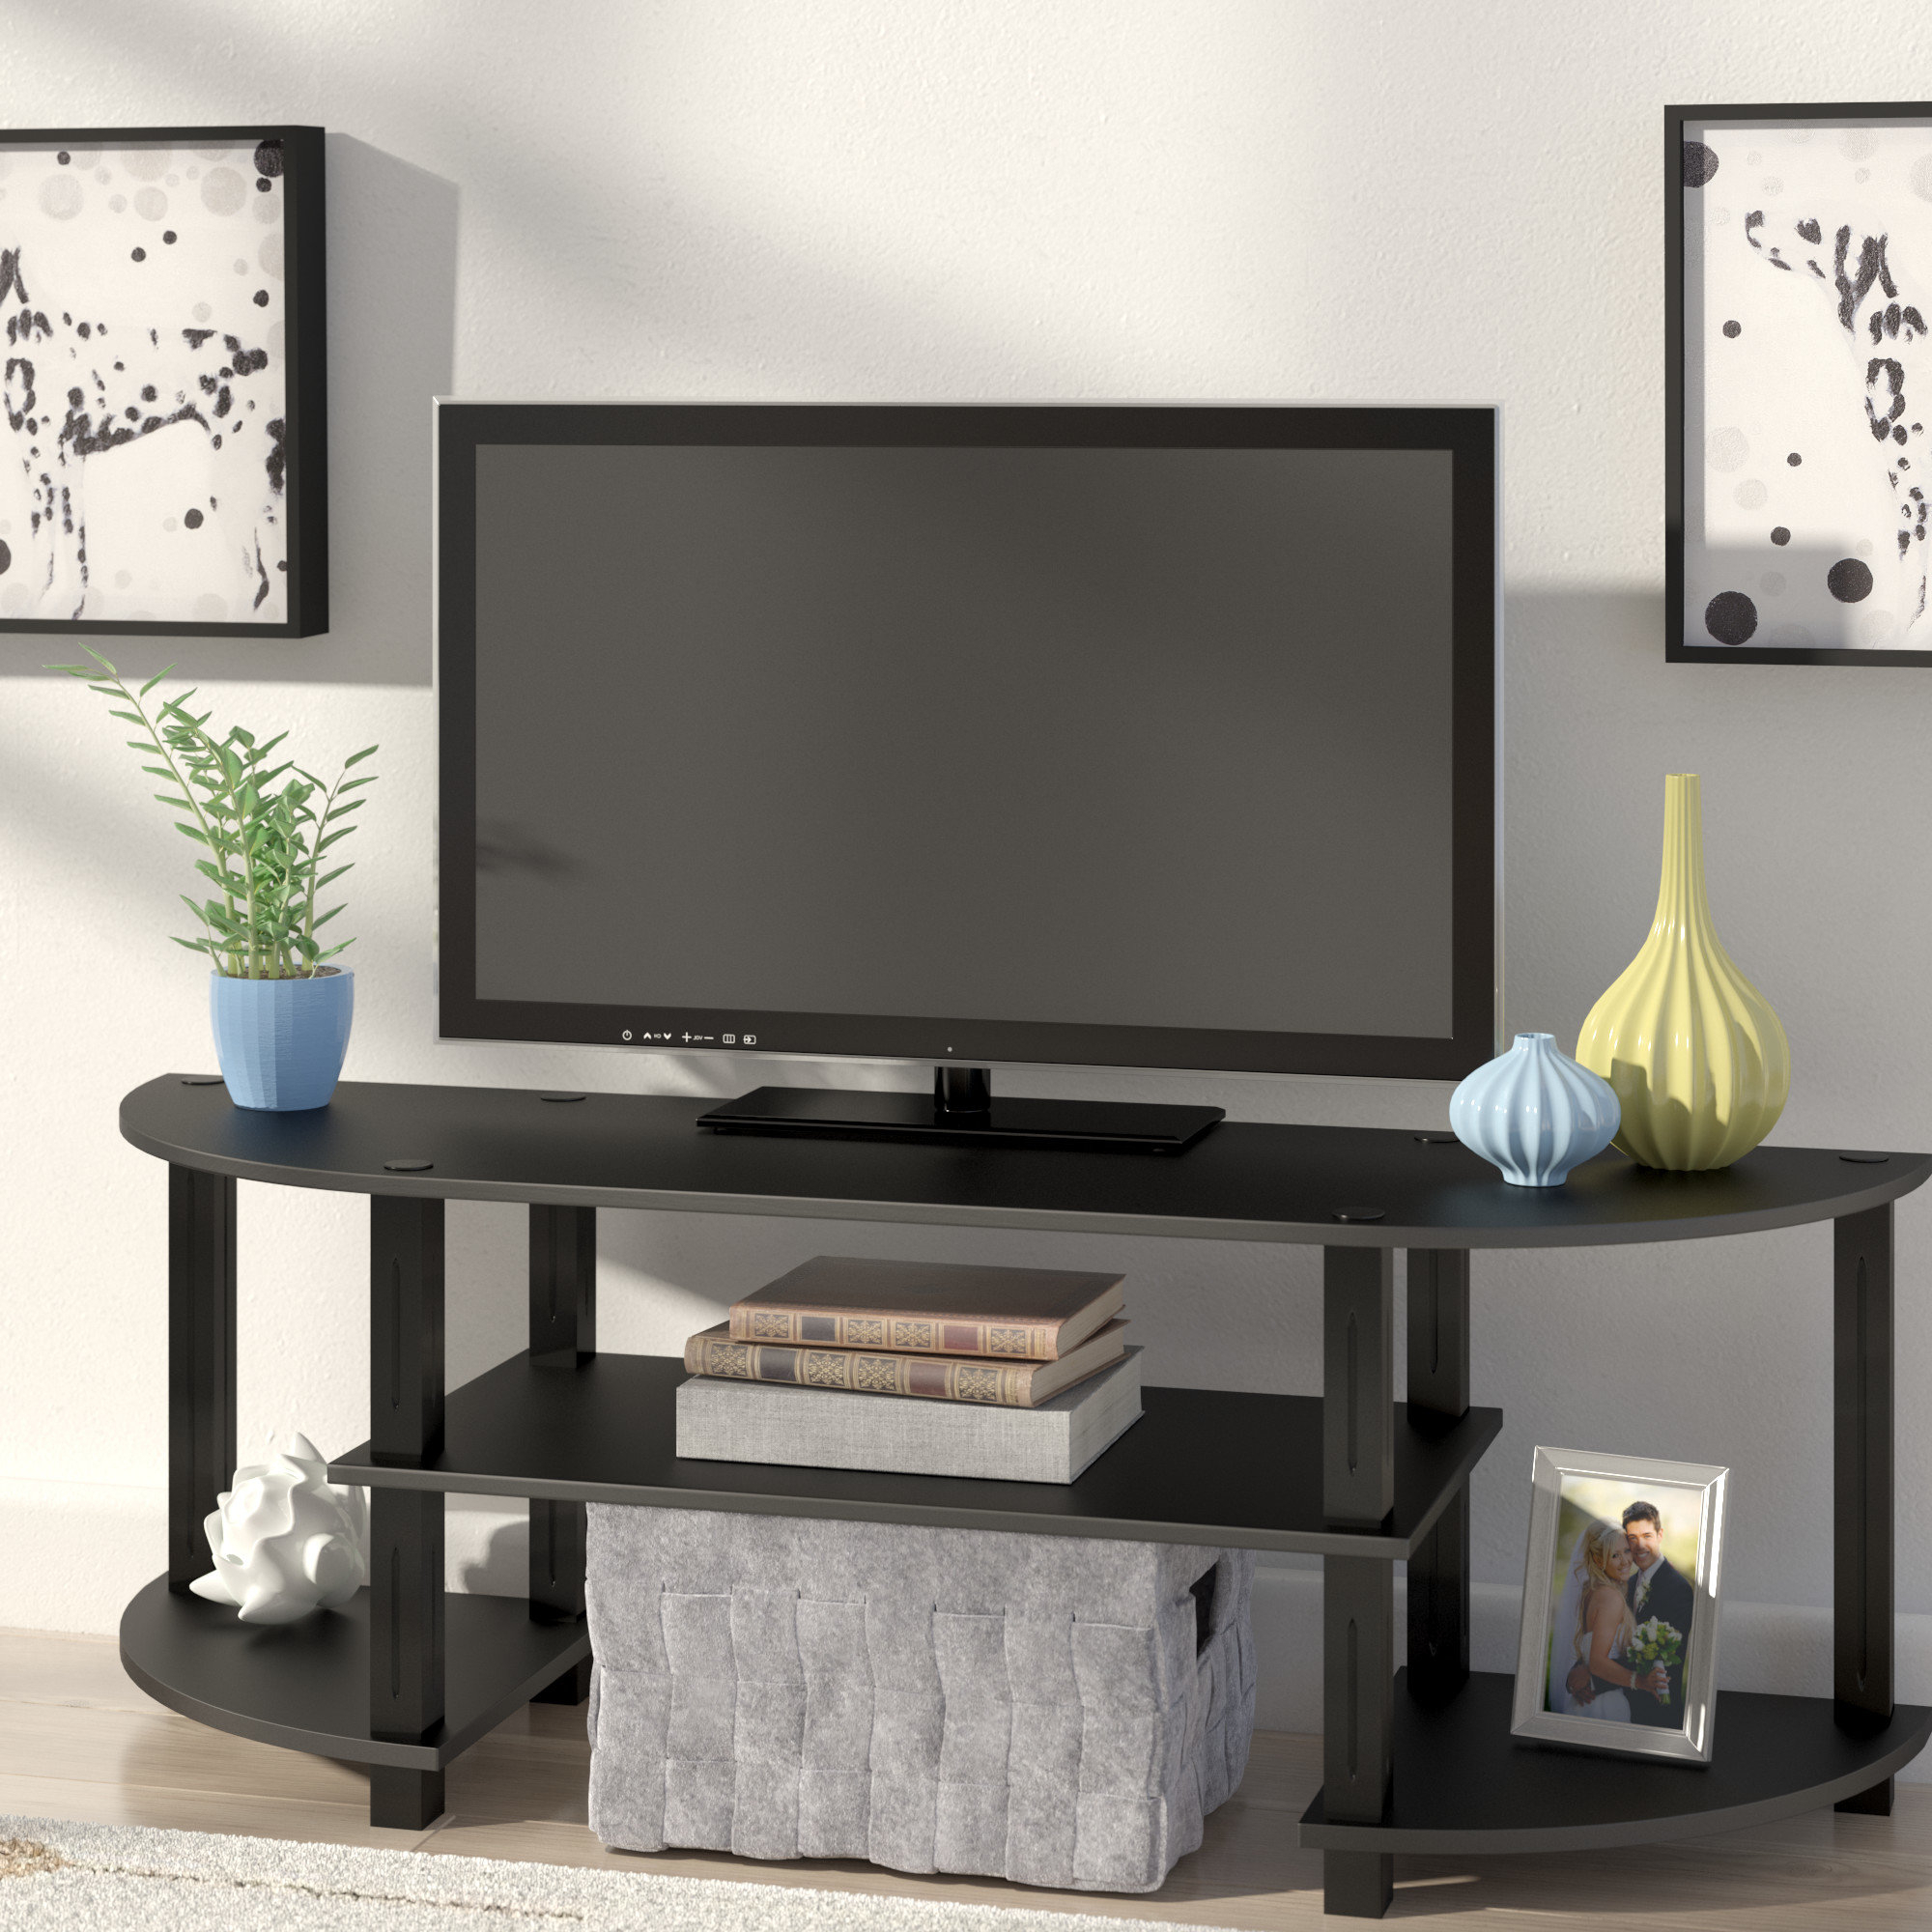 72 Inch Tv Stand | Wayfair With Regard To Kenzie 72 Inch Open Display Tv Stands (View 9 of 20)